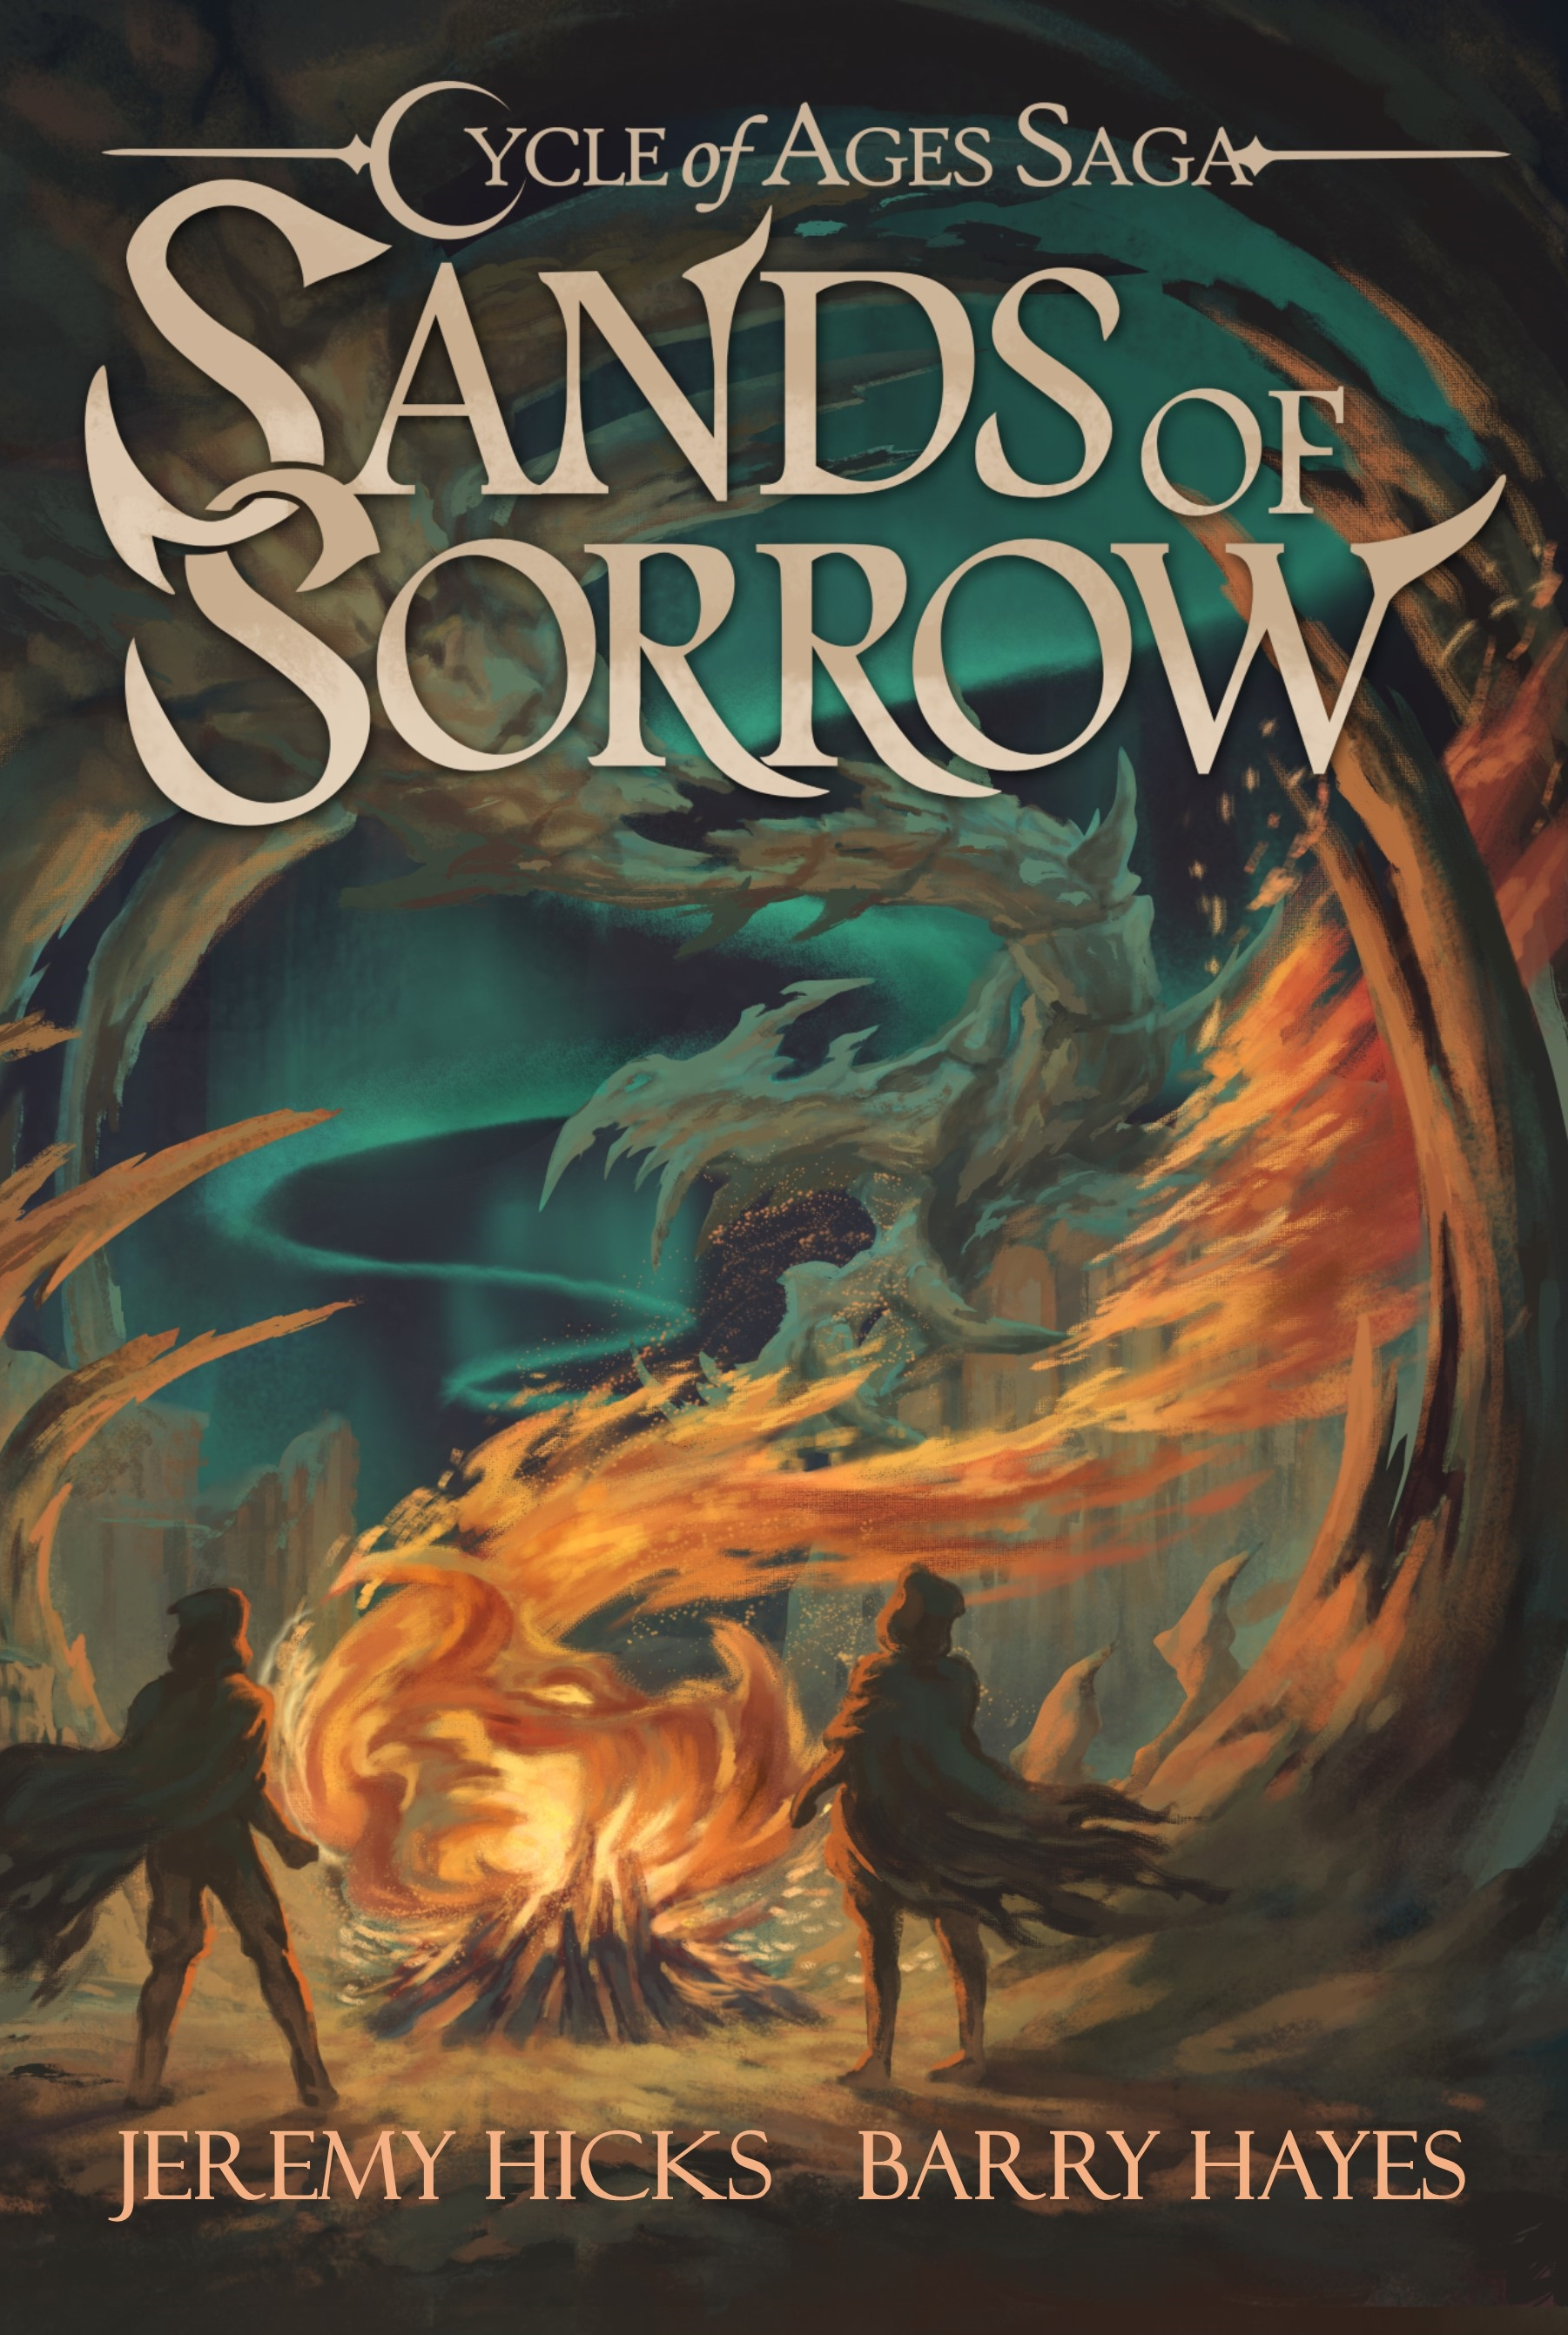 Cycle of Ages Saga: Sands of Sorrow (Volume 2)